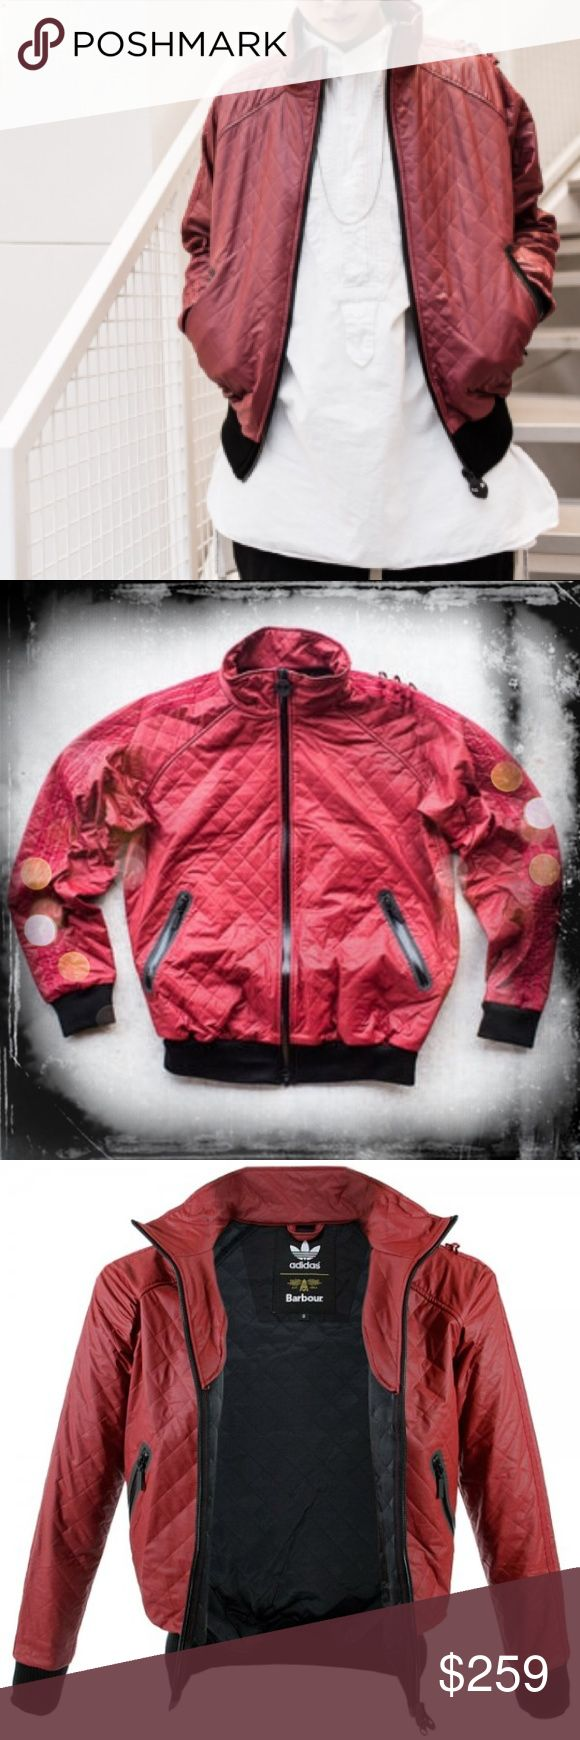 Adidas x Barbour Bomber Jacket, Size M *Host Pick* Authentic. Never used. This is an Adidas Originals x Barbour limited edition collection. The outer shell is rain resistant and the inner shell is soft. The jacket is designed to be a unisex cut. Looks great with jeans! Size medium. (MH61EEM) Adidas Jackets & Coats